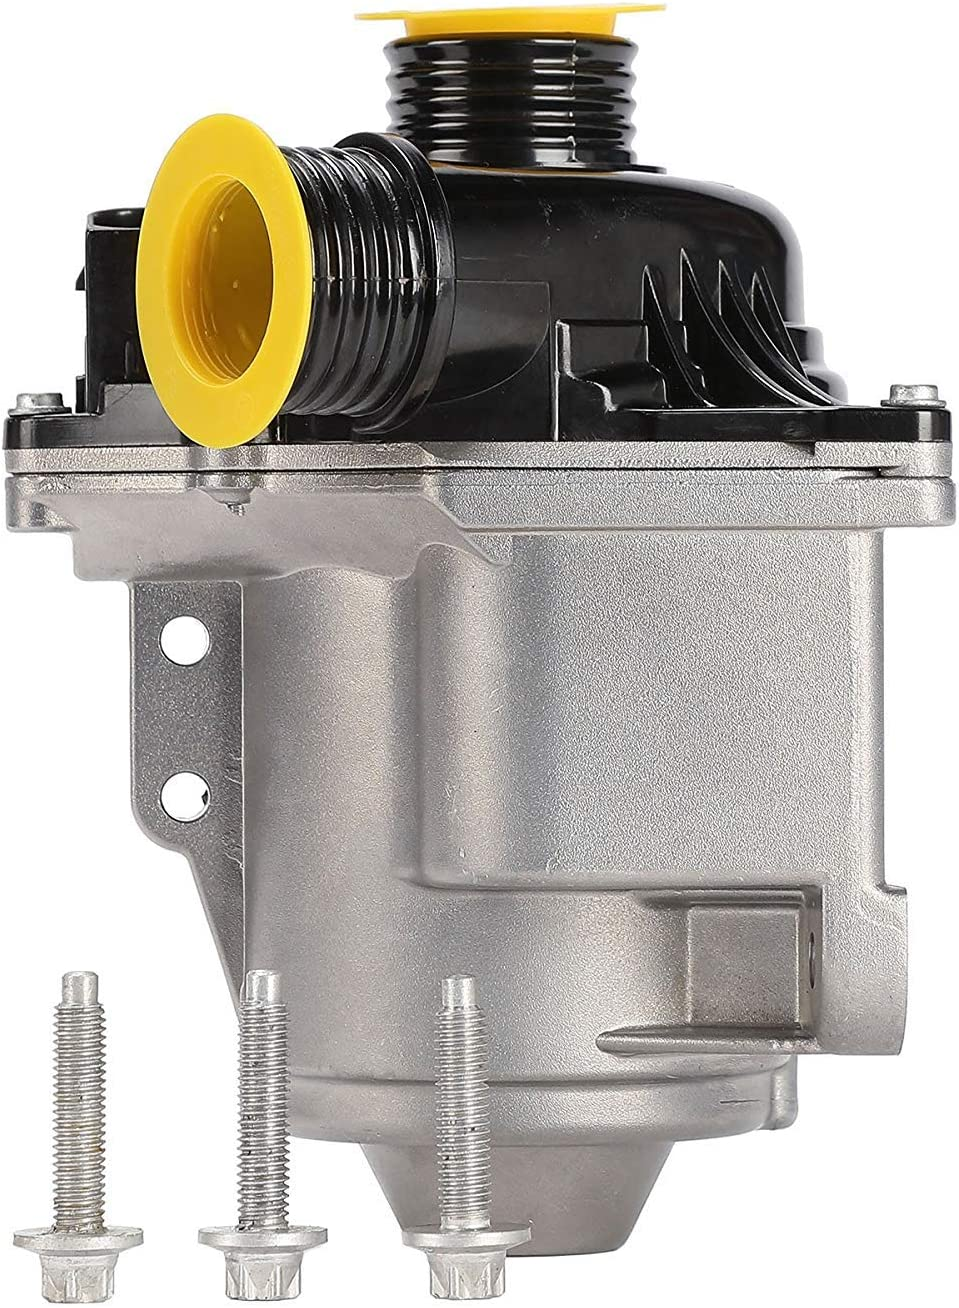 Orion Motor Tech Electric Engine Water Pumps for BMW E82 E88 135i 135is E90 E91 E92 E93 335i 335xi E60 E61 535i 535xi E89 Z4 Replace# 11517632426 11517588885 11517563659